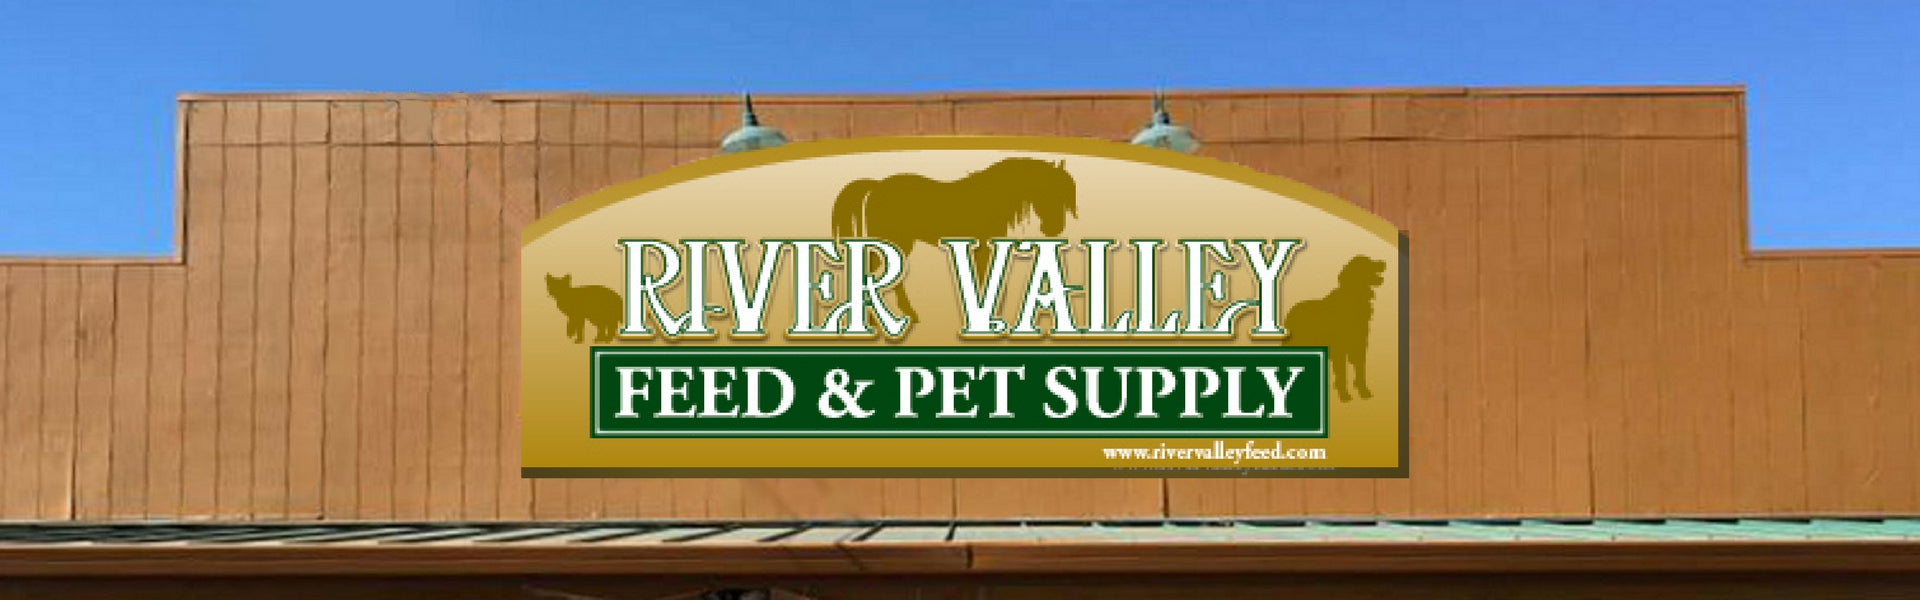 Your Source For Farm, Feed, Tack, Pet, Equine, & Livestock